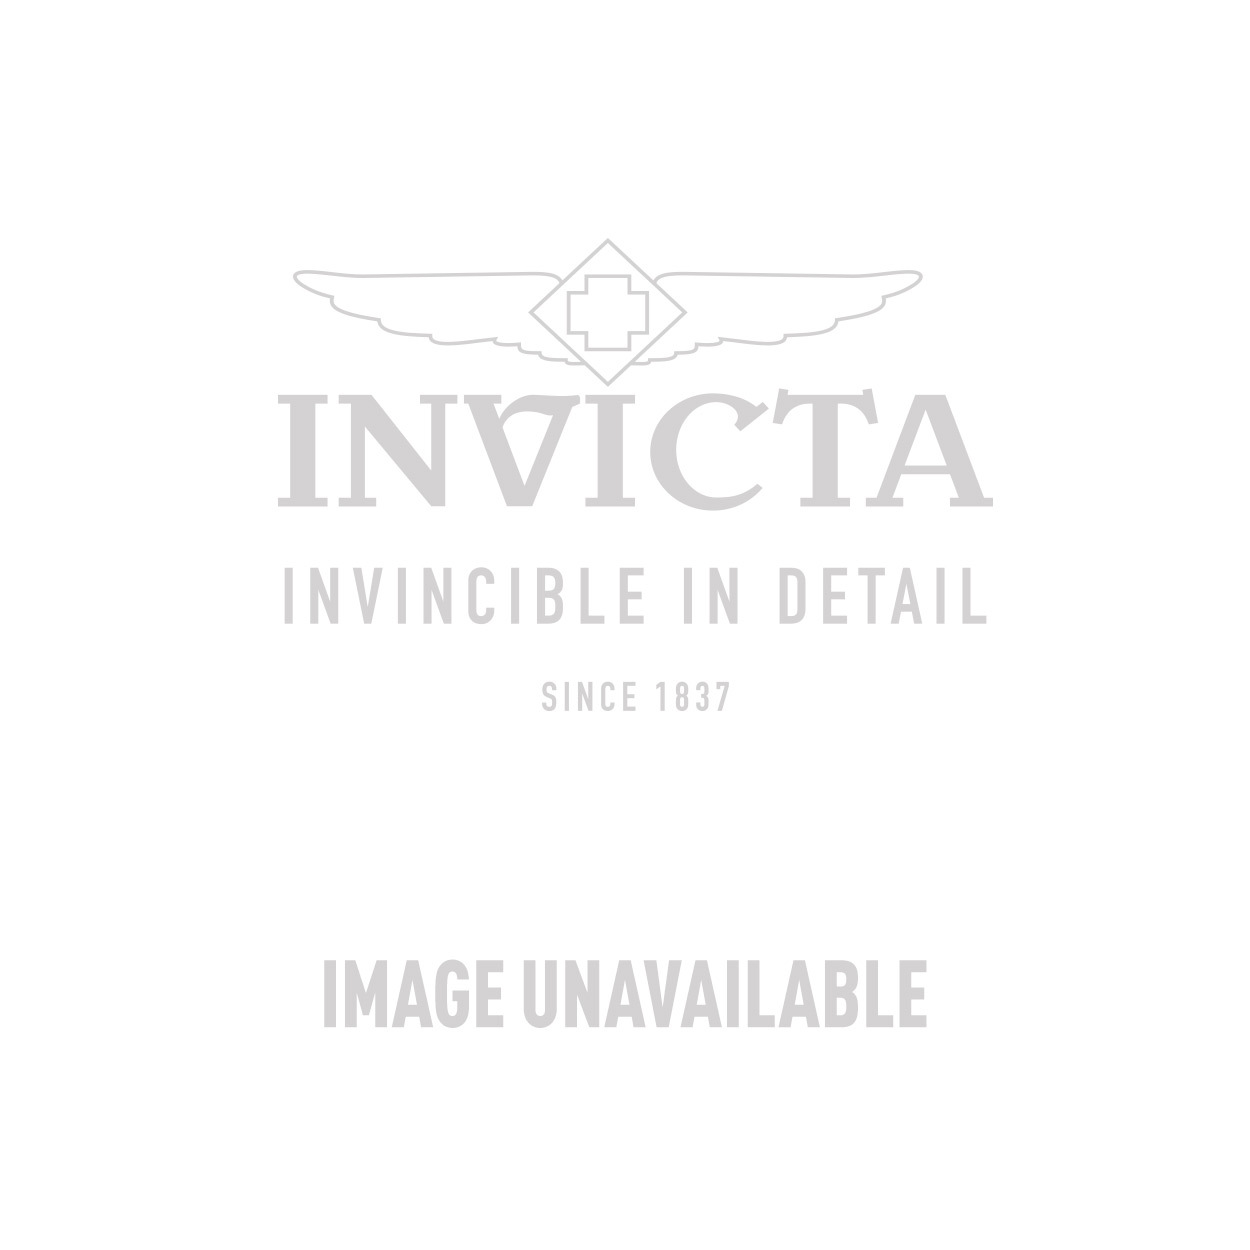 Invicta 22.25cm Men's Bracelets in Rhodium Aged - Model J0313